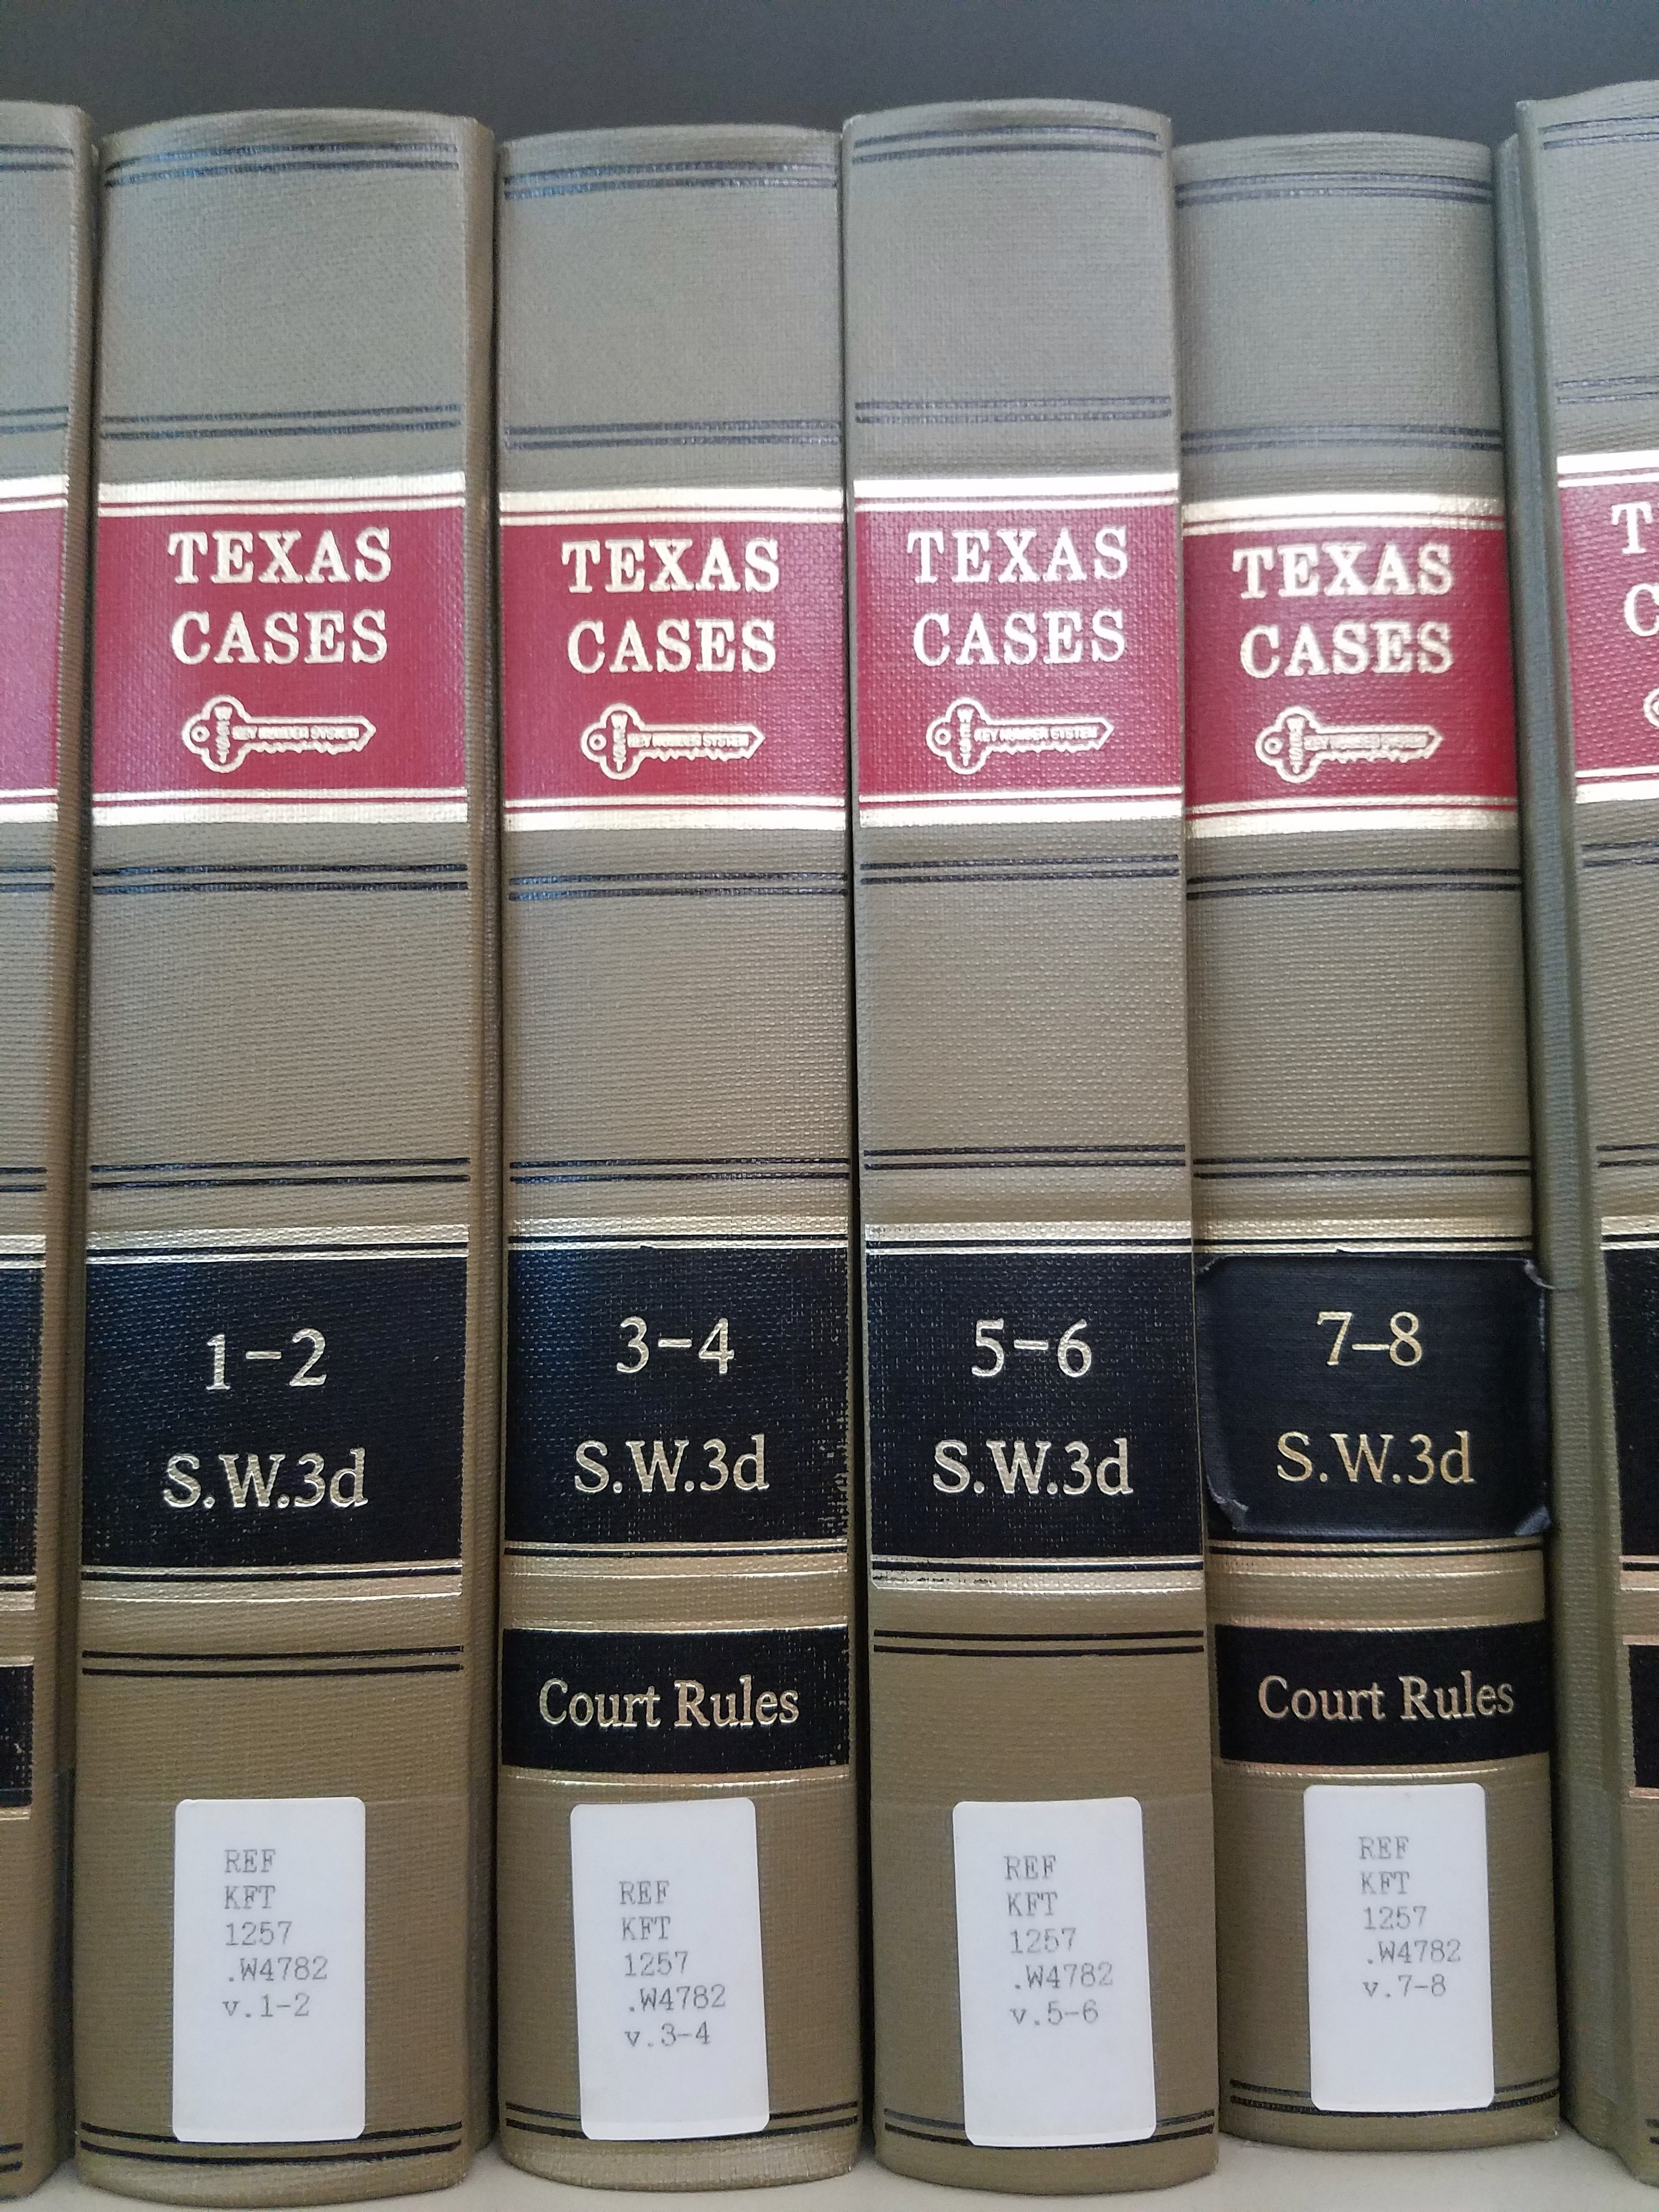 South Western Reporter: Texas Cases, 3d